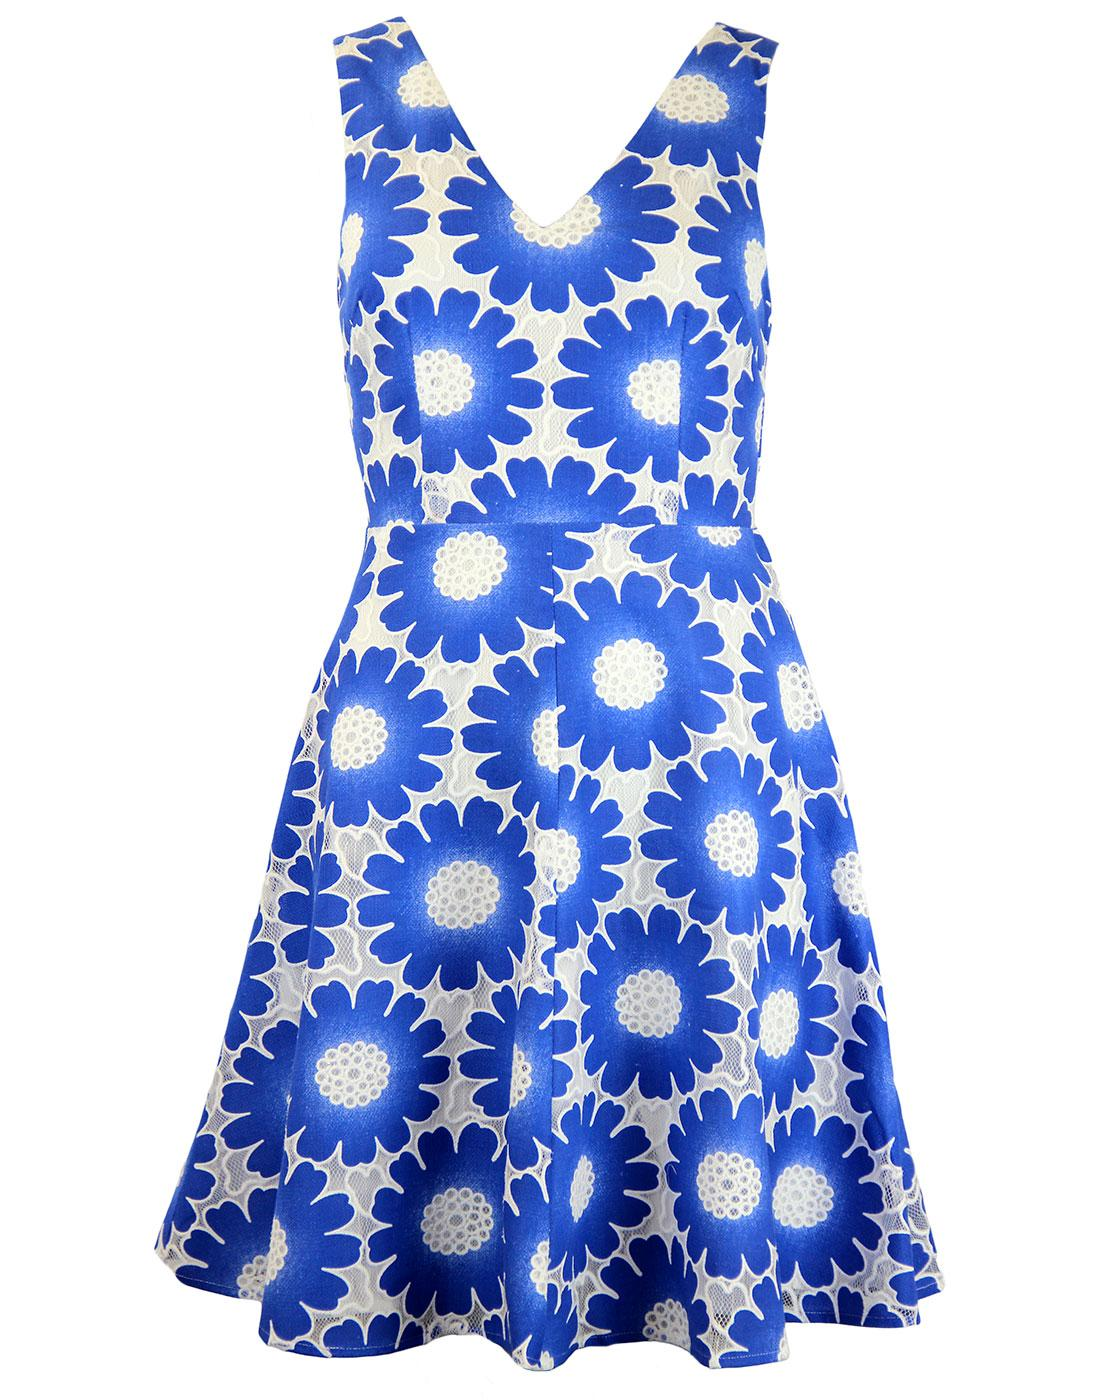 Let's Dance TRAFFIC PEOPLE Retro 60s Floral Dress